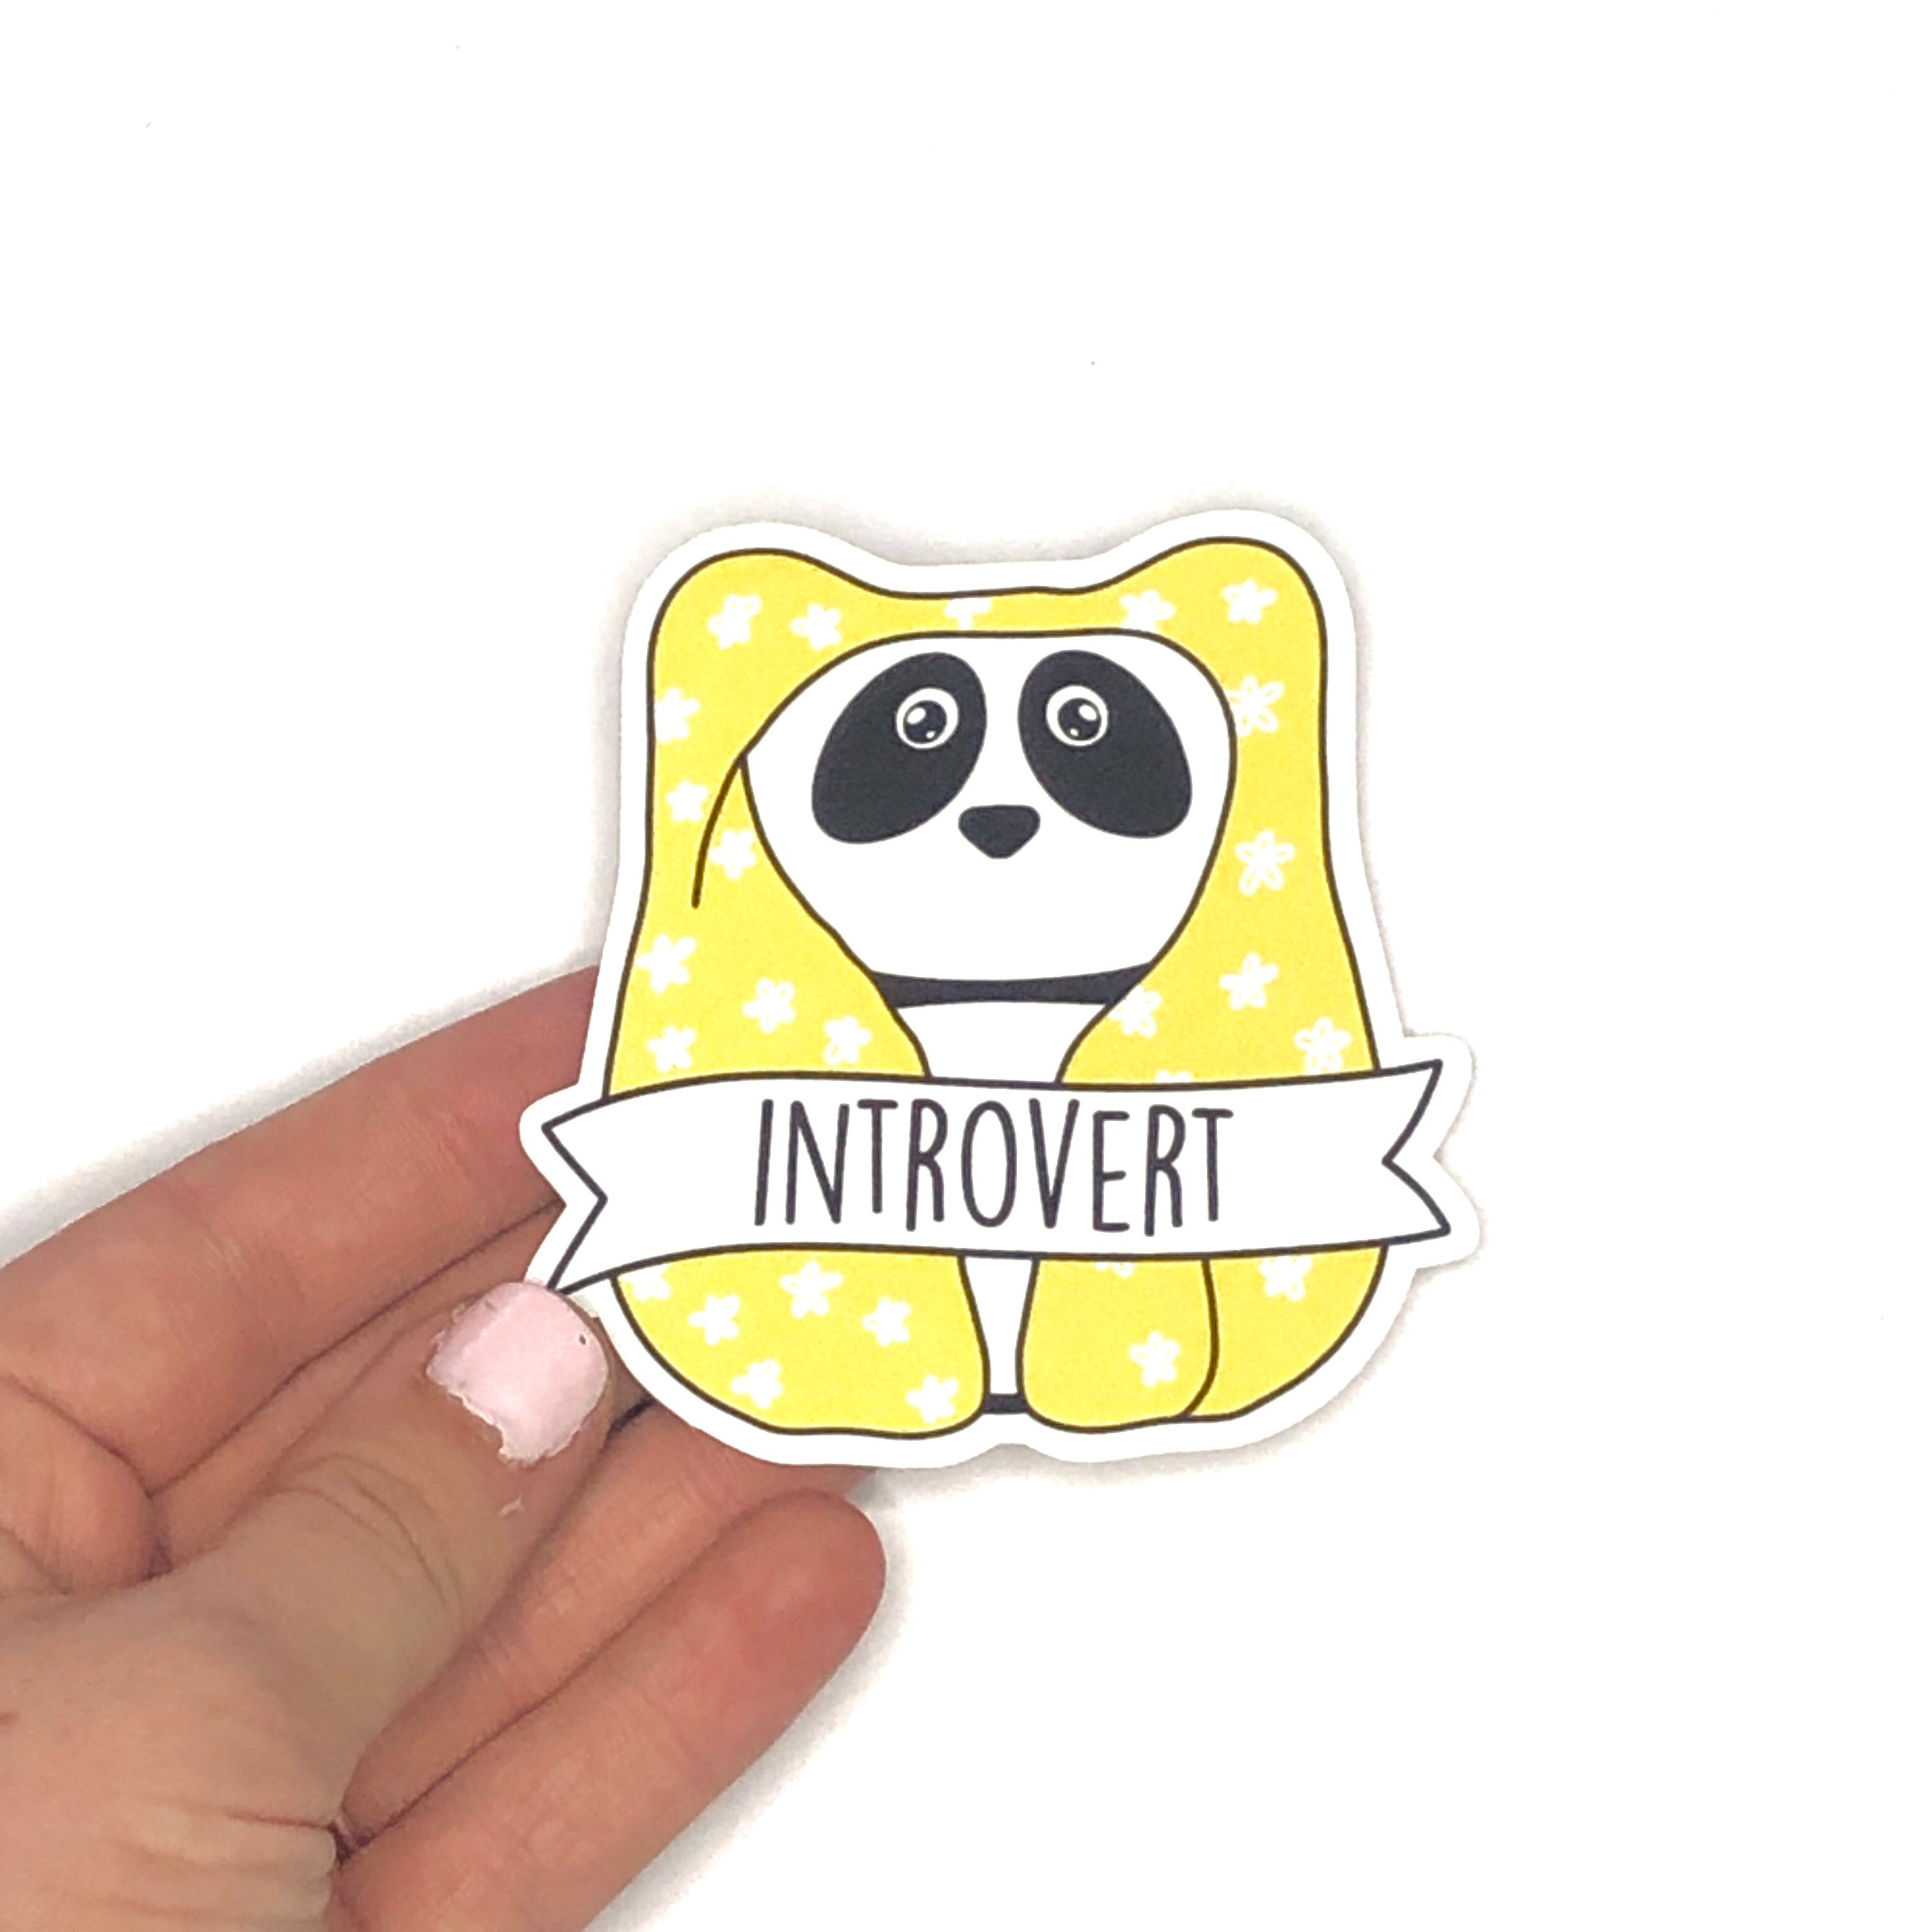 'Introvert' Matte Vinyl Decal